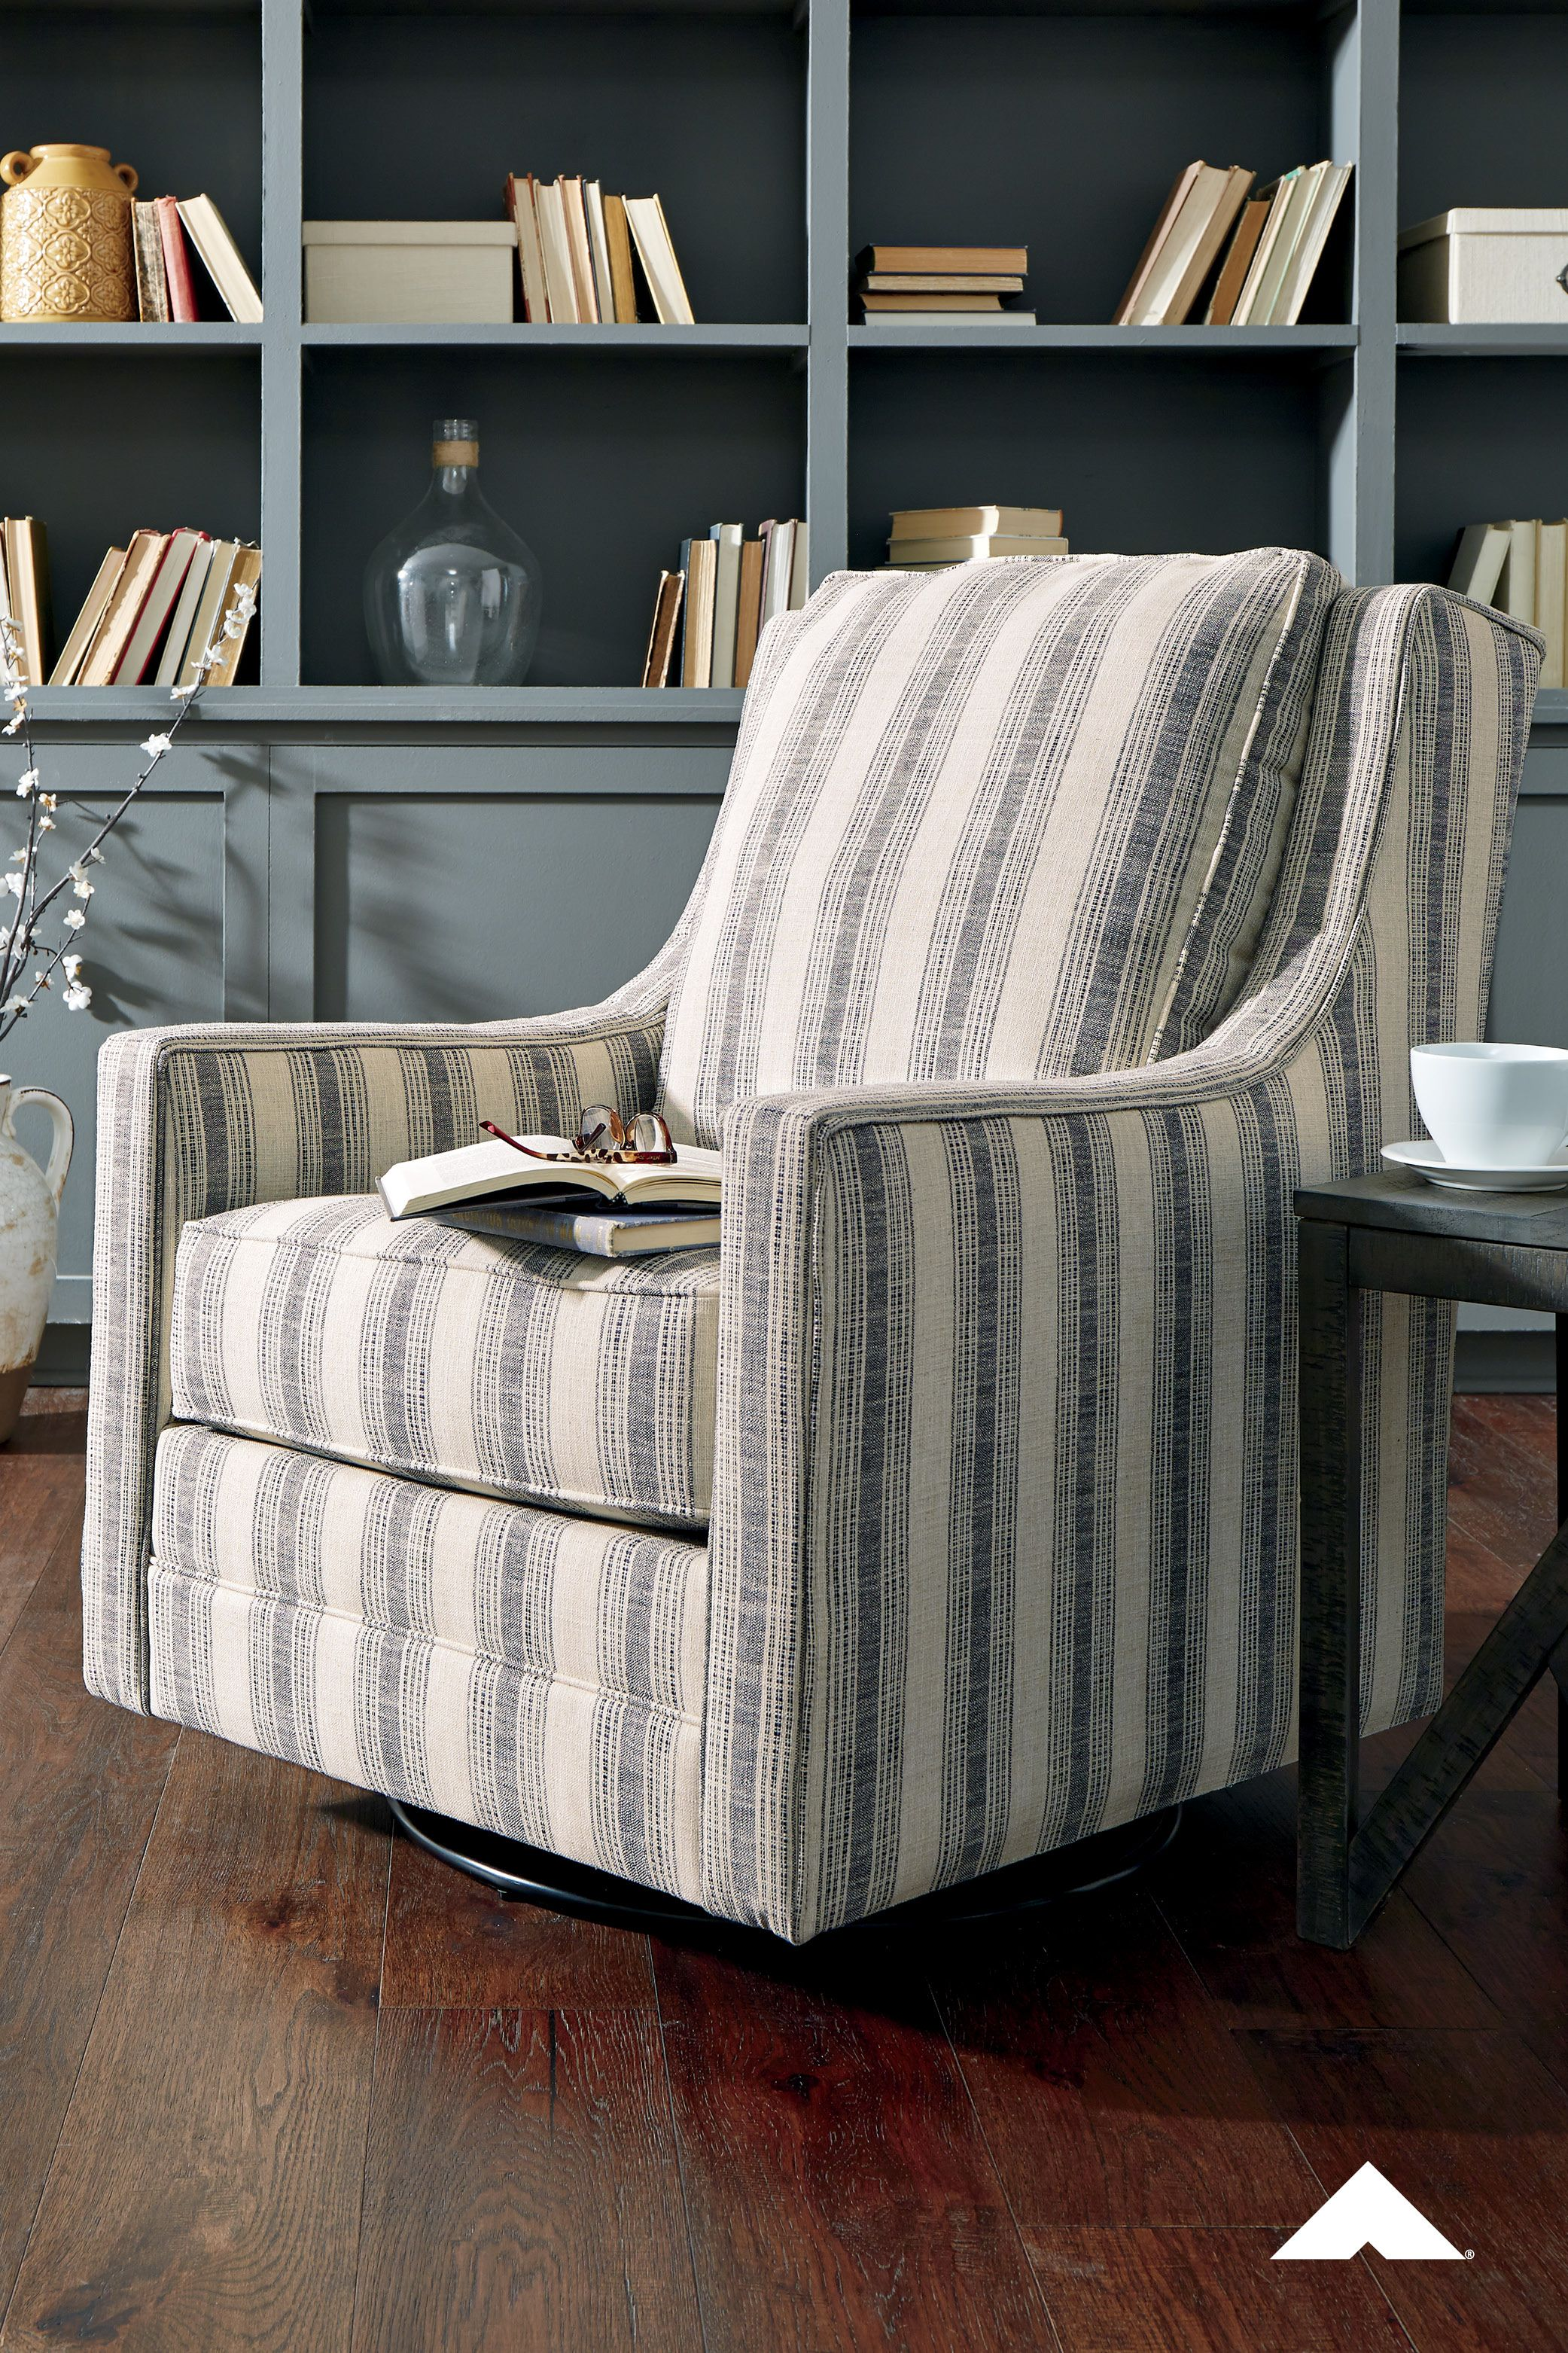 Kambria Ivory Black Swivel Glider Accent Chair By Ashley Furniture Crisp And Cool But In 2020 Accent Chairs For Living Room Pattern Accent Chair Stripe Accent Chair